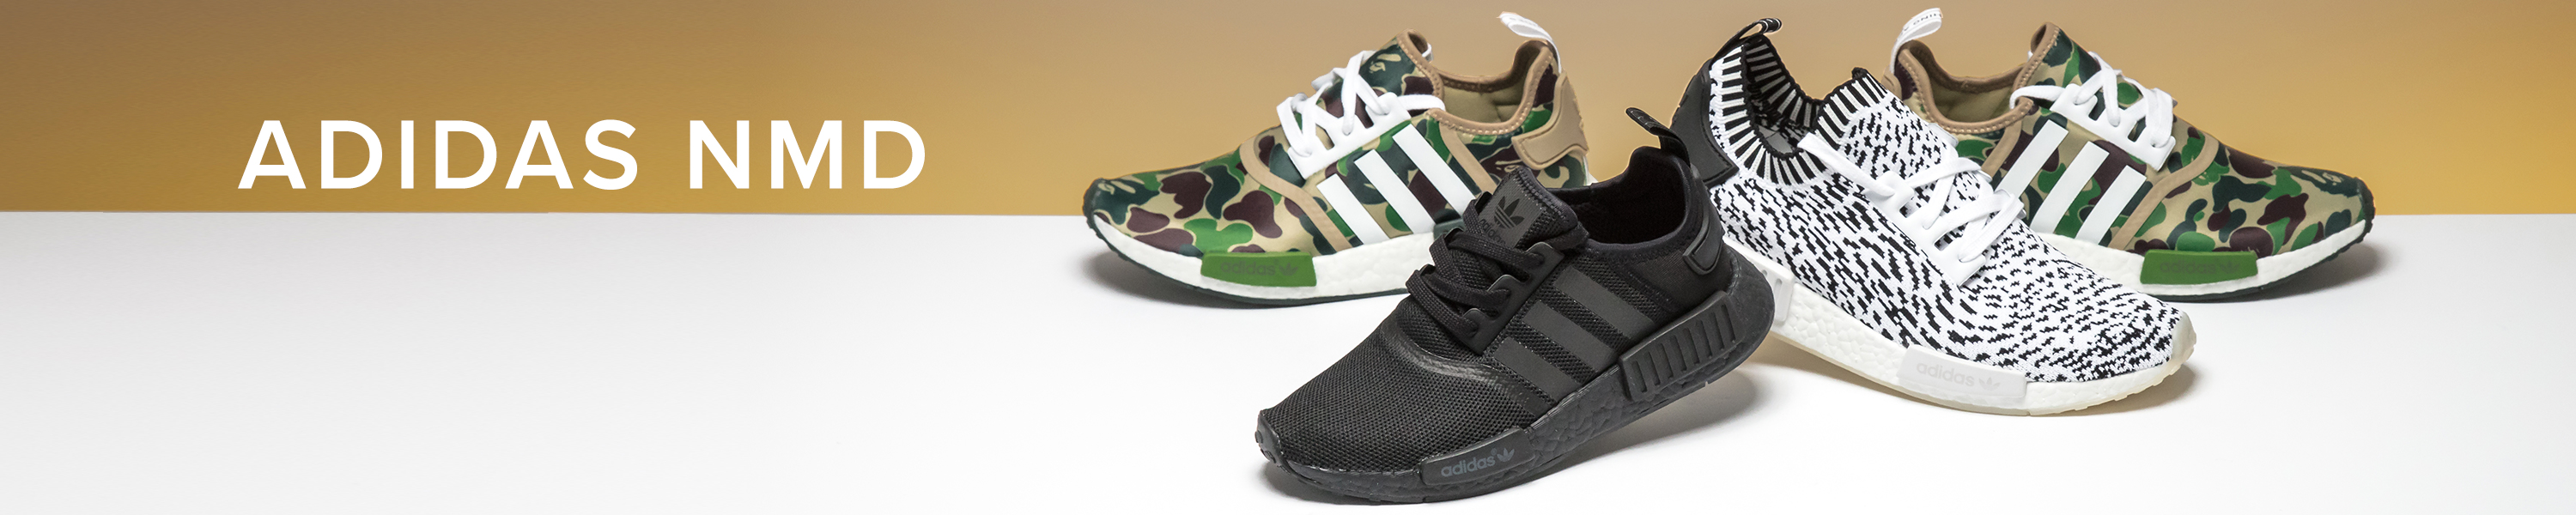 4d06e56e61ba1 Amazon.com  The Sneakershop  Adidas NMD